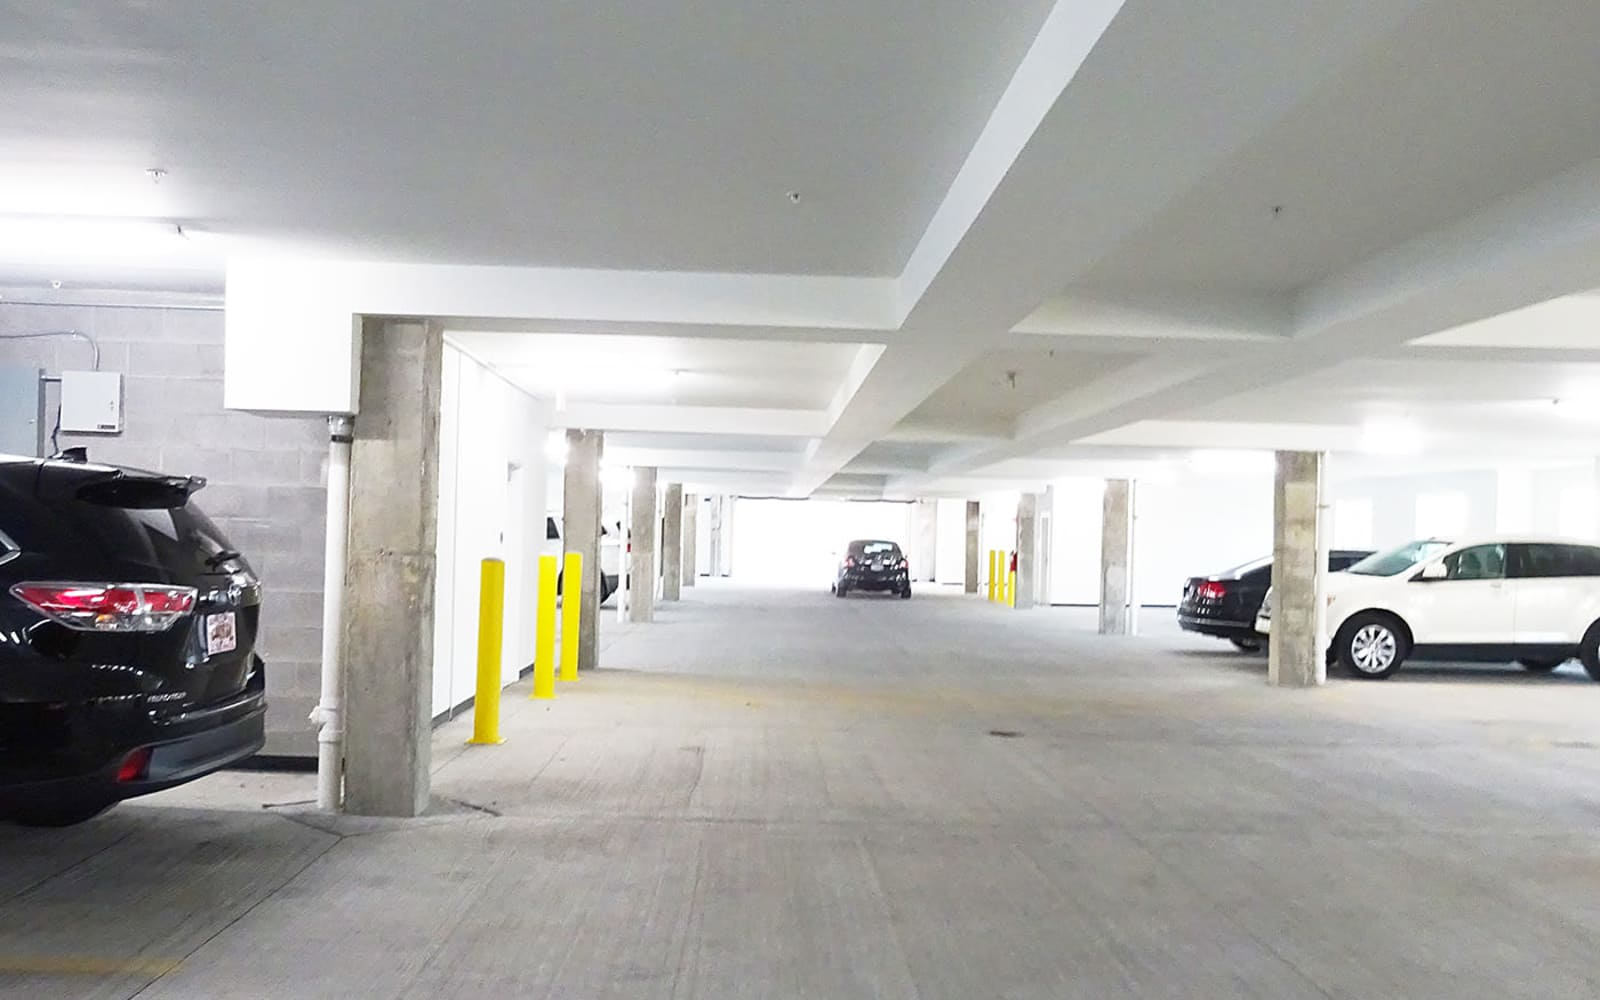 Spacious parking garage at Allure Apartments in Centerville, Ohio